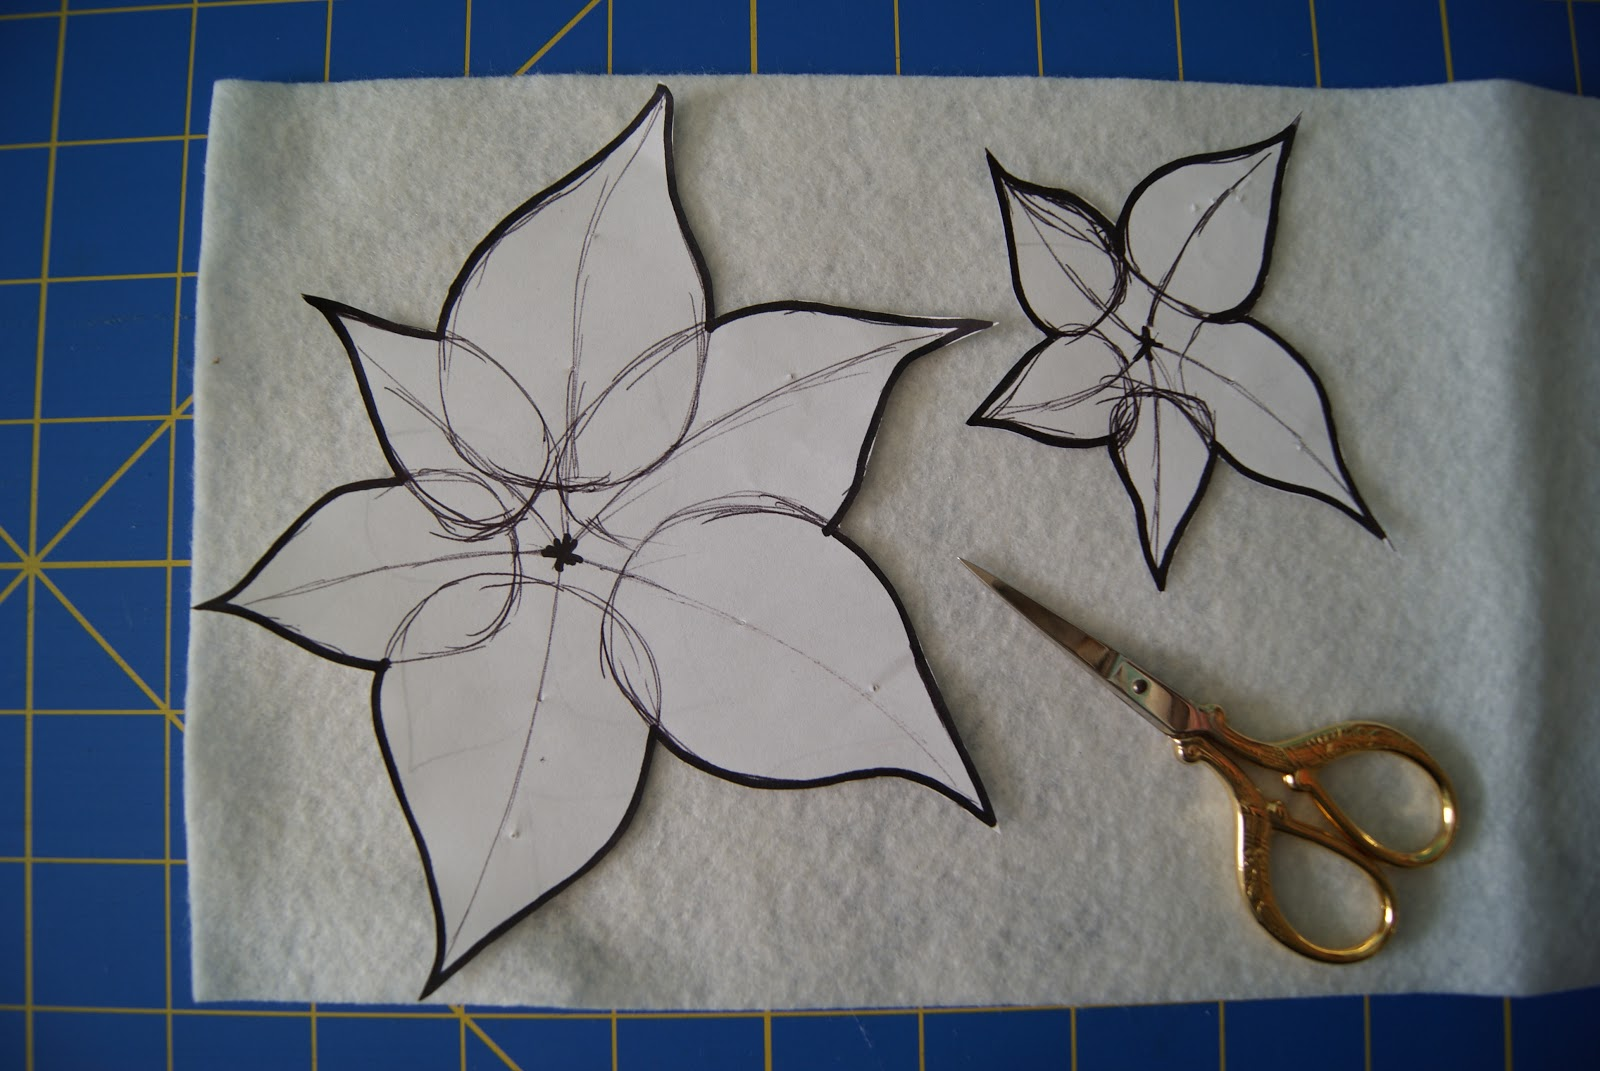 Large Flower Patterns To Cut Out 2 poinsettia patterns, cut